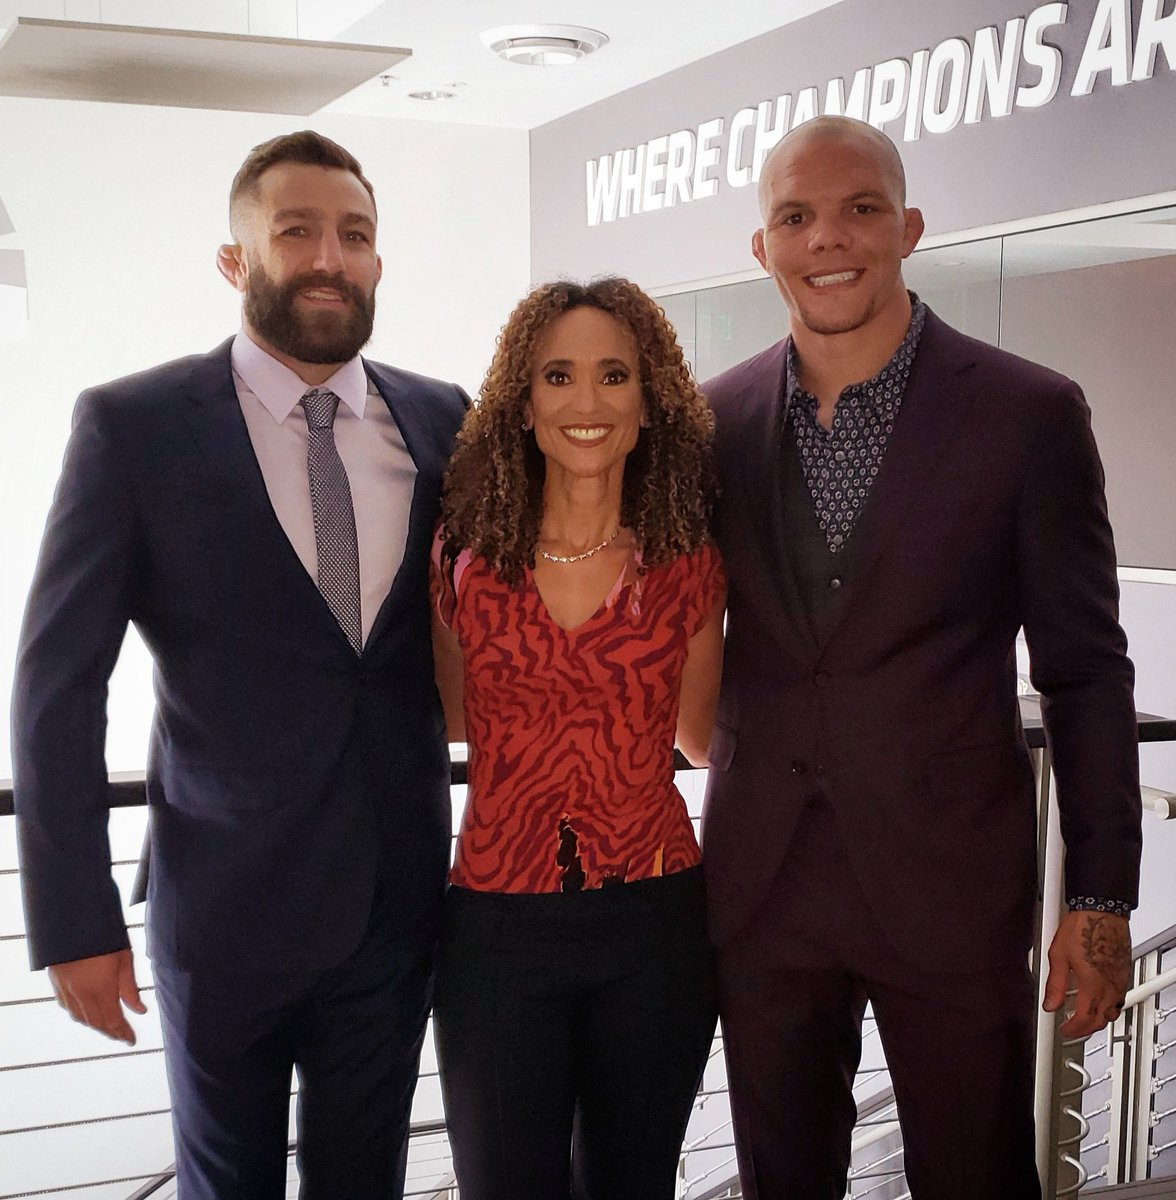 Psyched to be working the @espnmma desk with these two badasses! Hope you can join me, @lionheartasmith, @mikemav22 and @meganolivi for the #UFCVegas6 post show on #ESPNPlus right after the main event! 👊👊👊 #UFC #MMA https://t.co/lFV07xdEFv